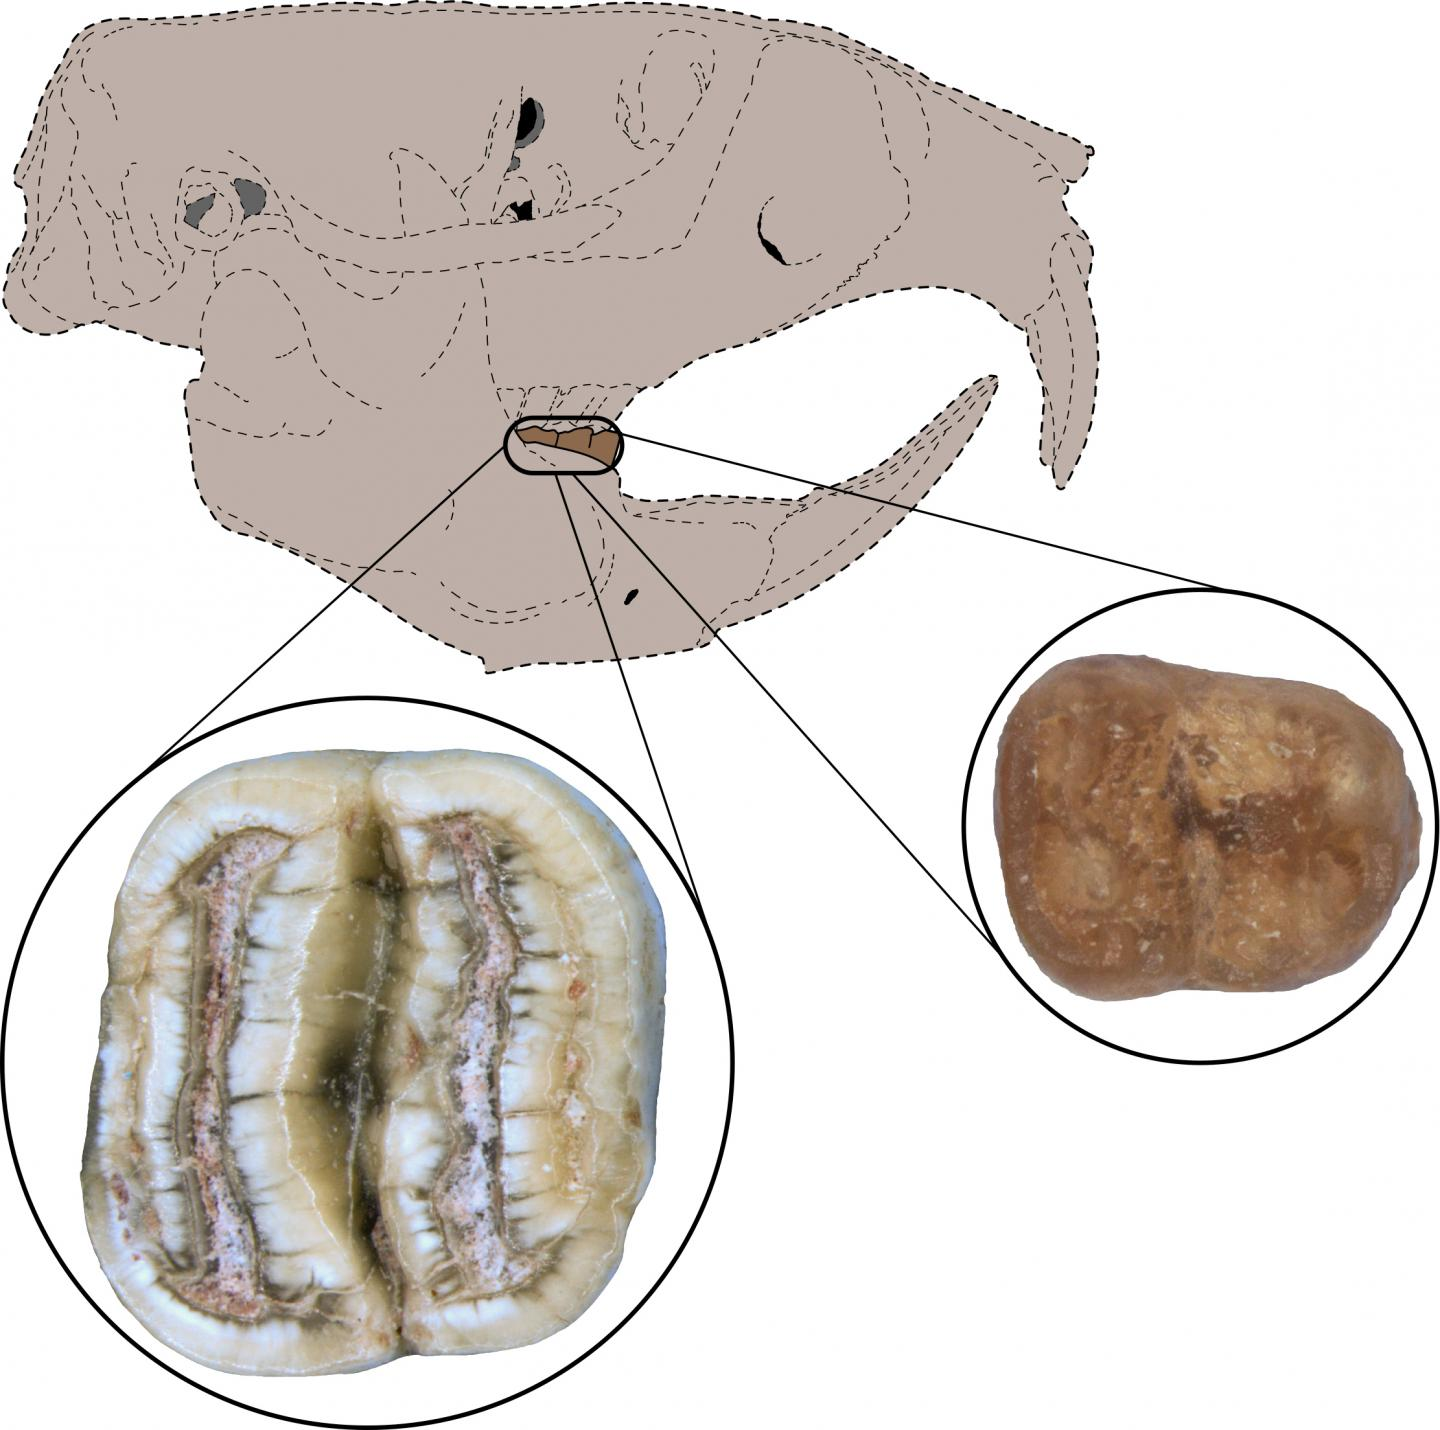 Teeth Are First Evidence of North American Rodents in Caribbean